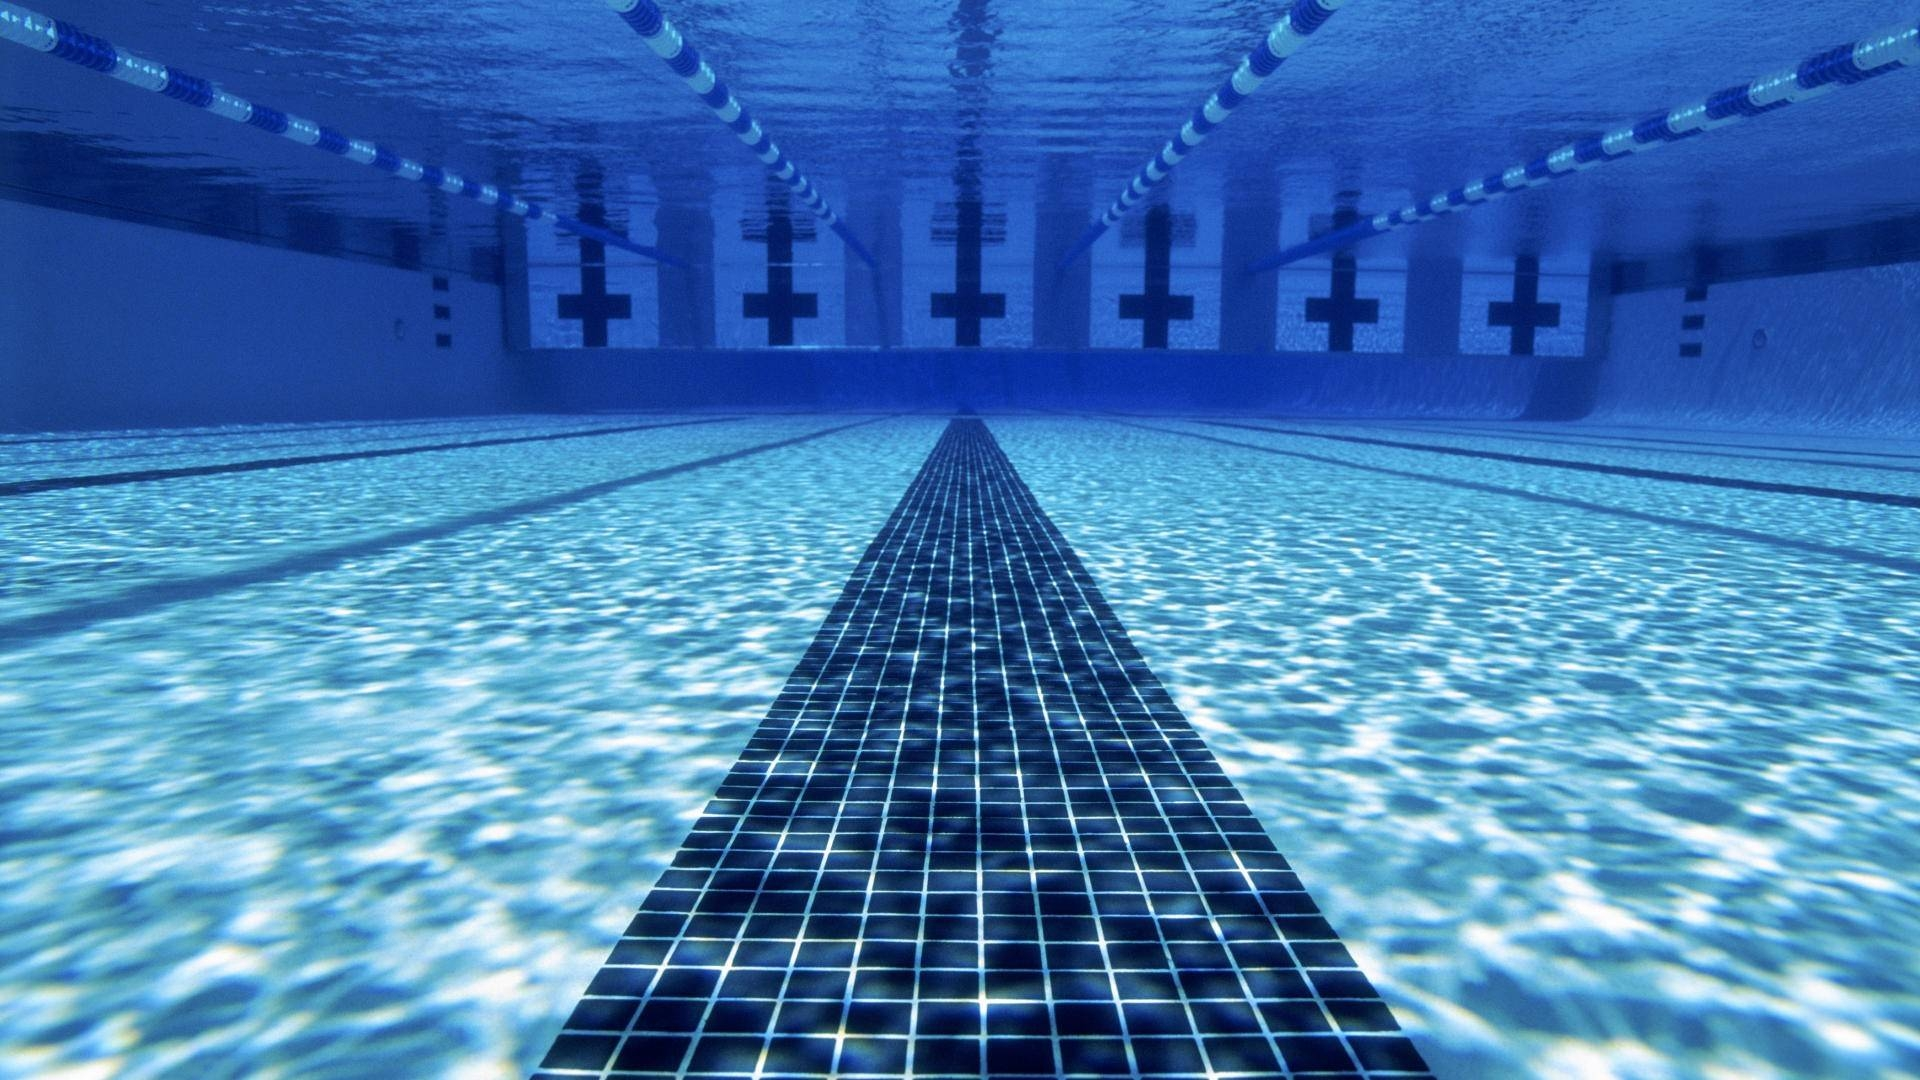 Swimming Pool Background norwin aqua club : tryouts/lessons